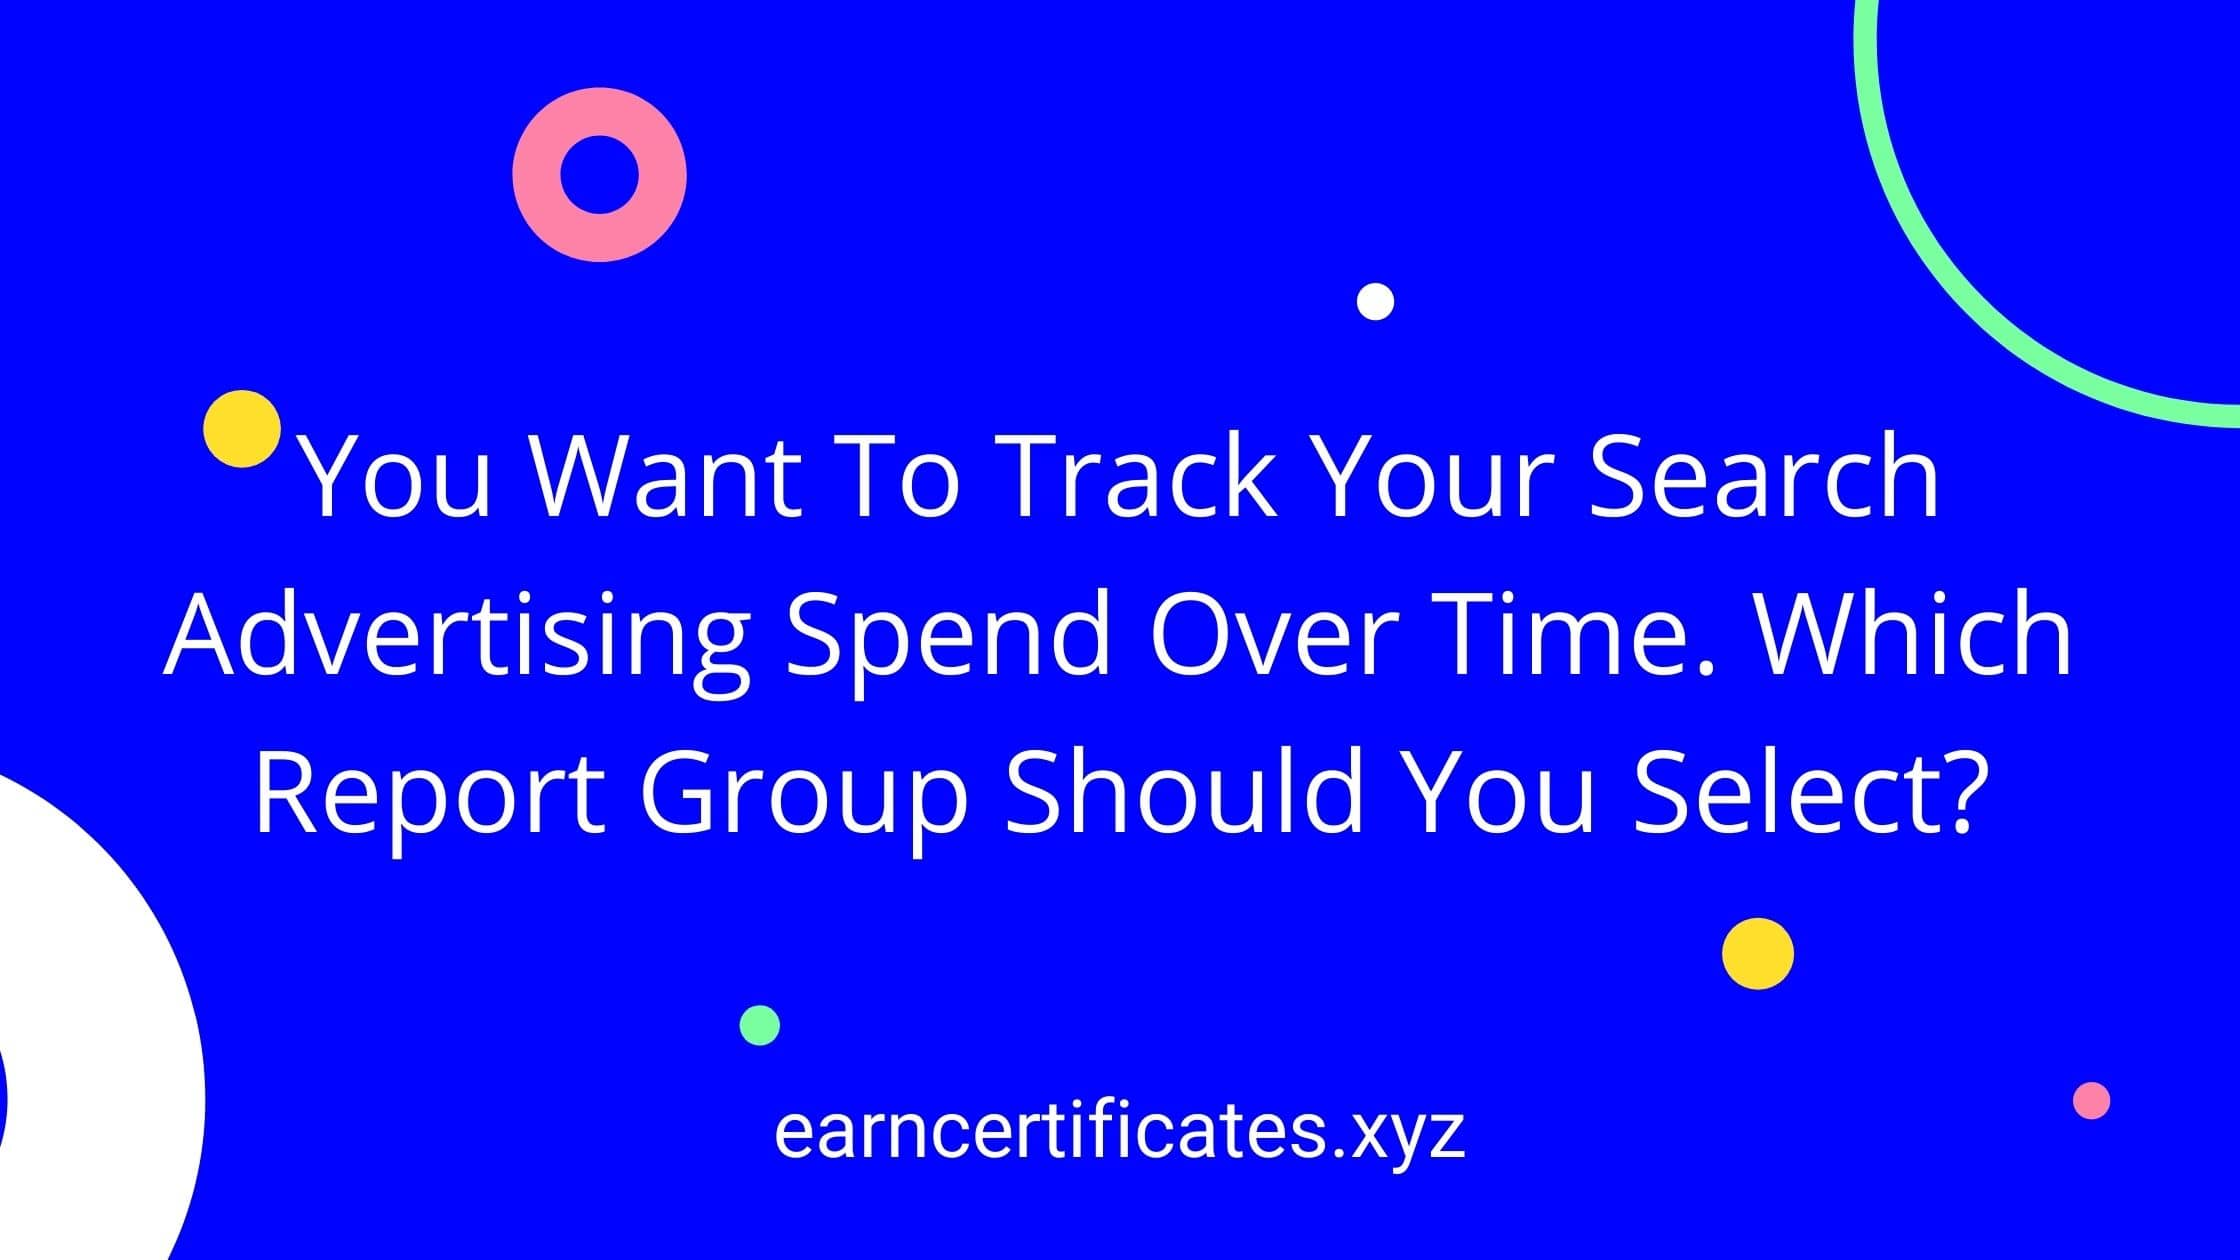 You Want To Track Your Search Advertising Spend Over Time. Which Report Group Should You Select?